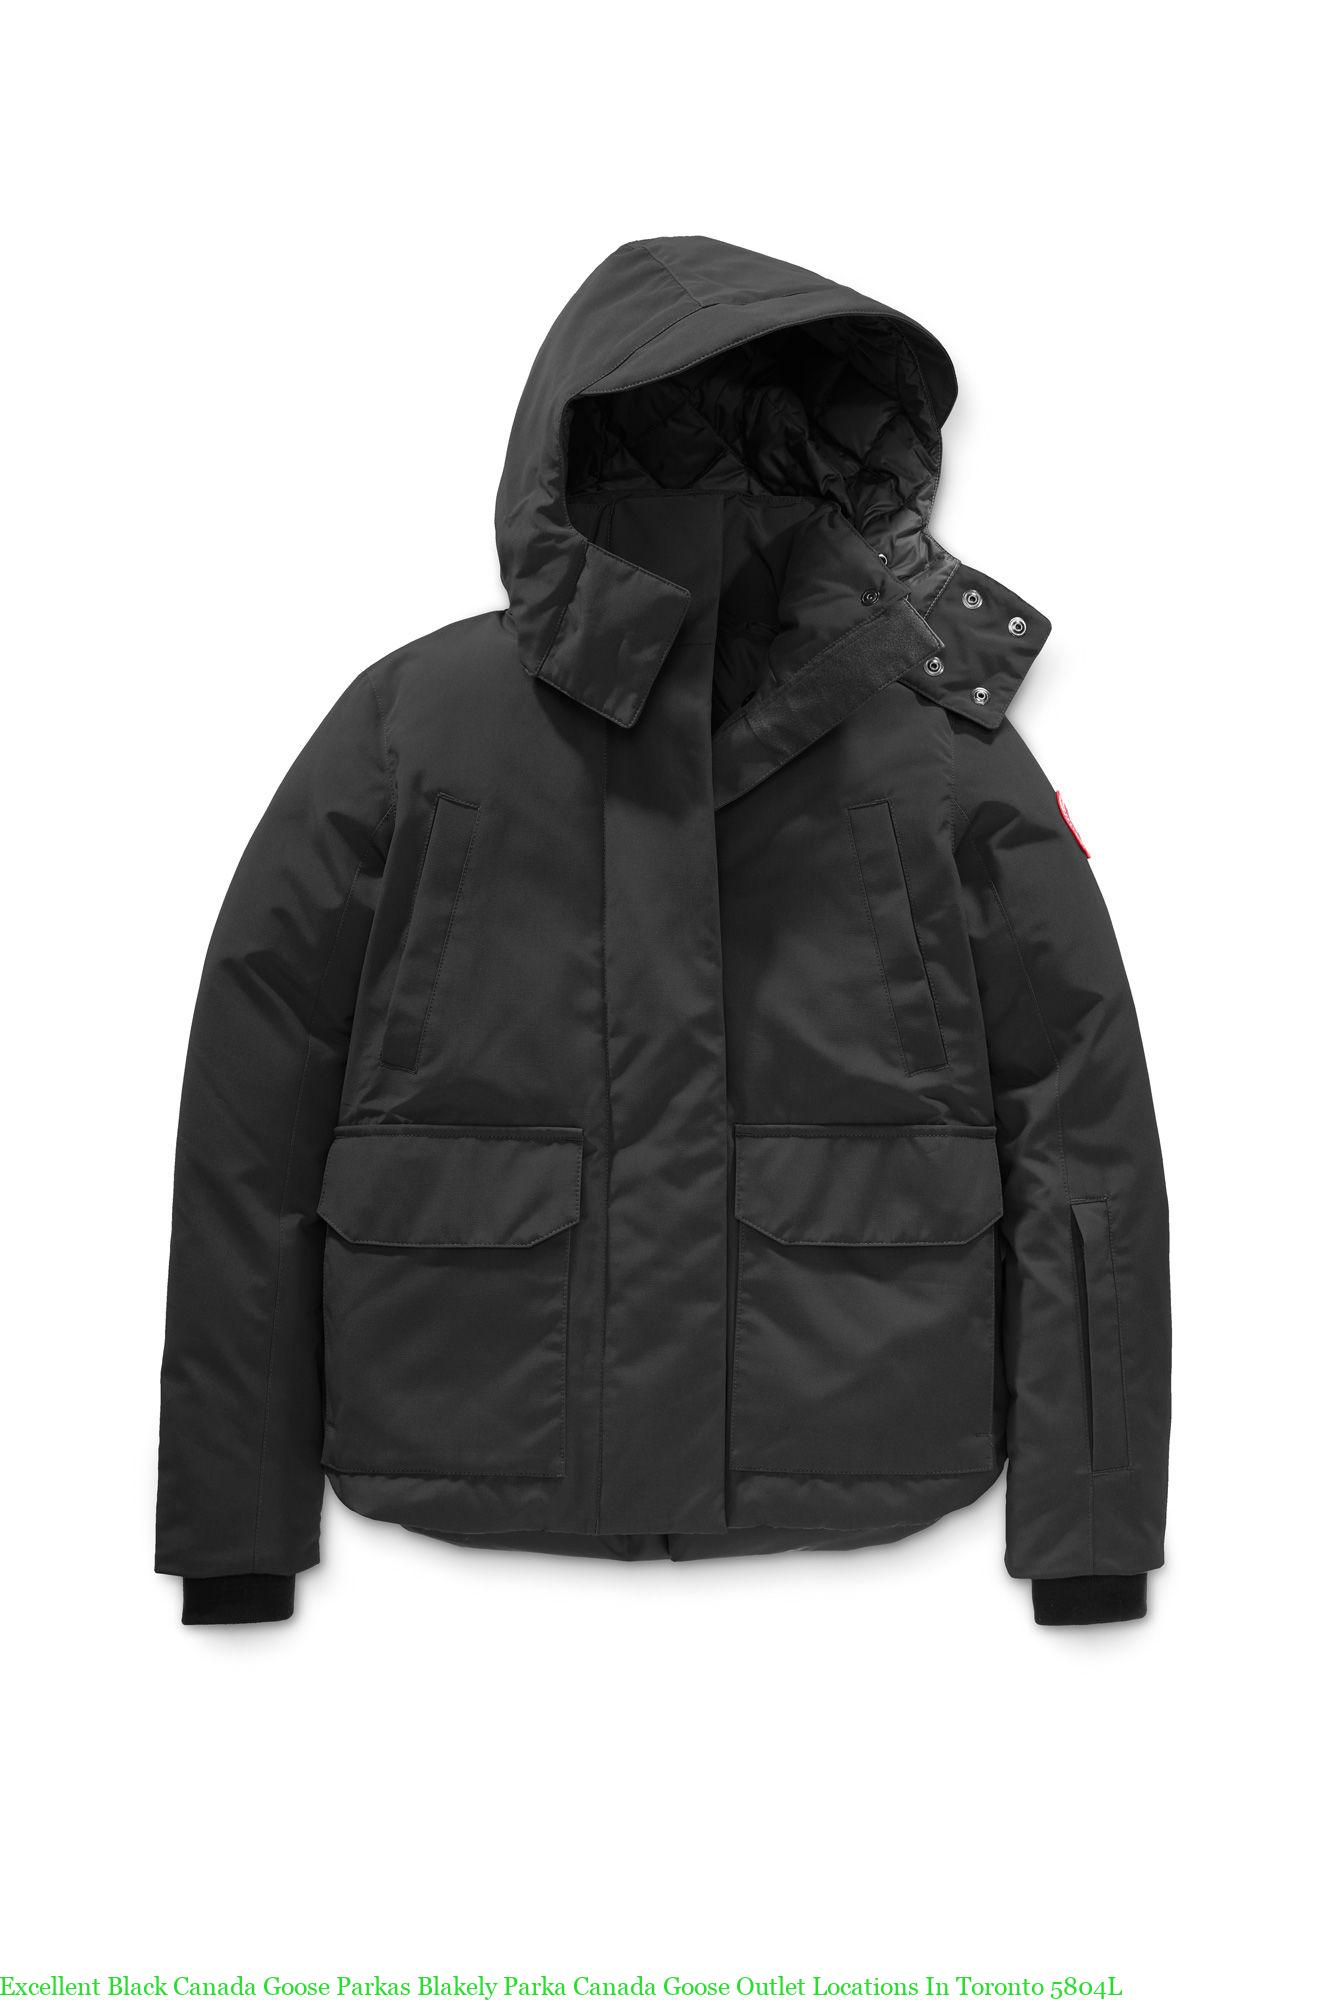 453acf1dc Excellent Black Canada Goose Parkas Blakely Parka Canada Goose Outlet  Locations In Toronto 5804L